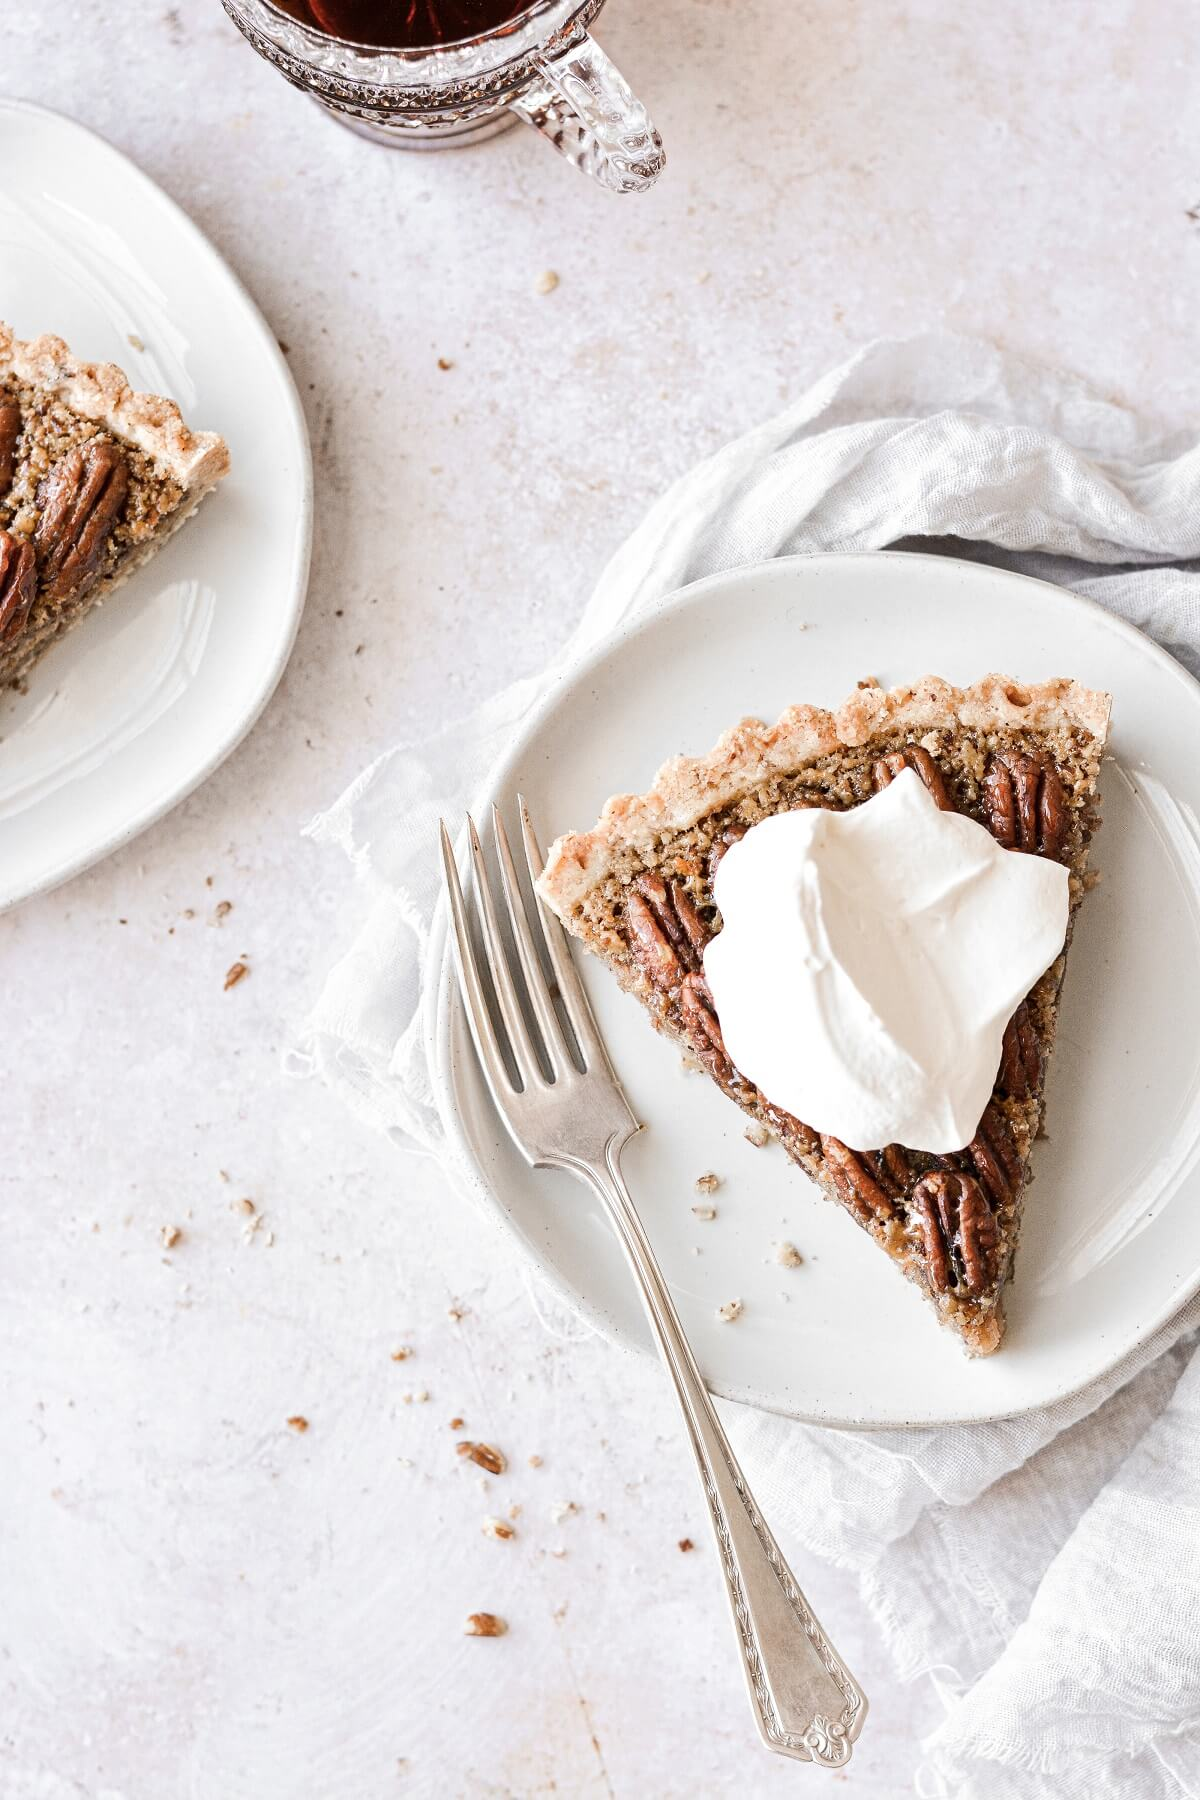 A slice of maple pecan tart topped with whipped cream.